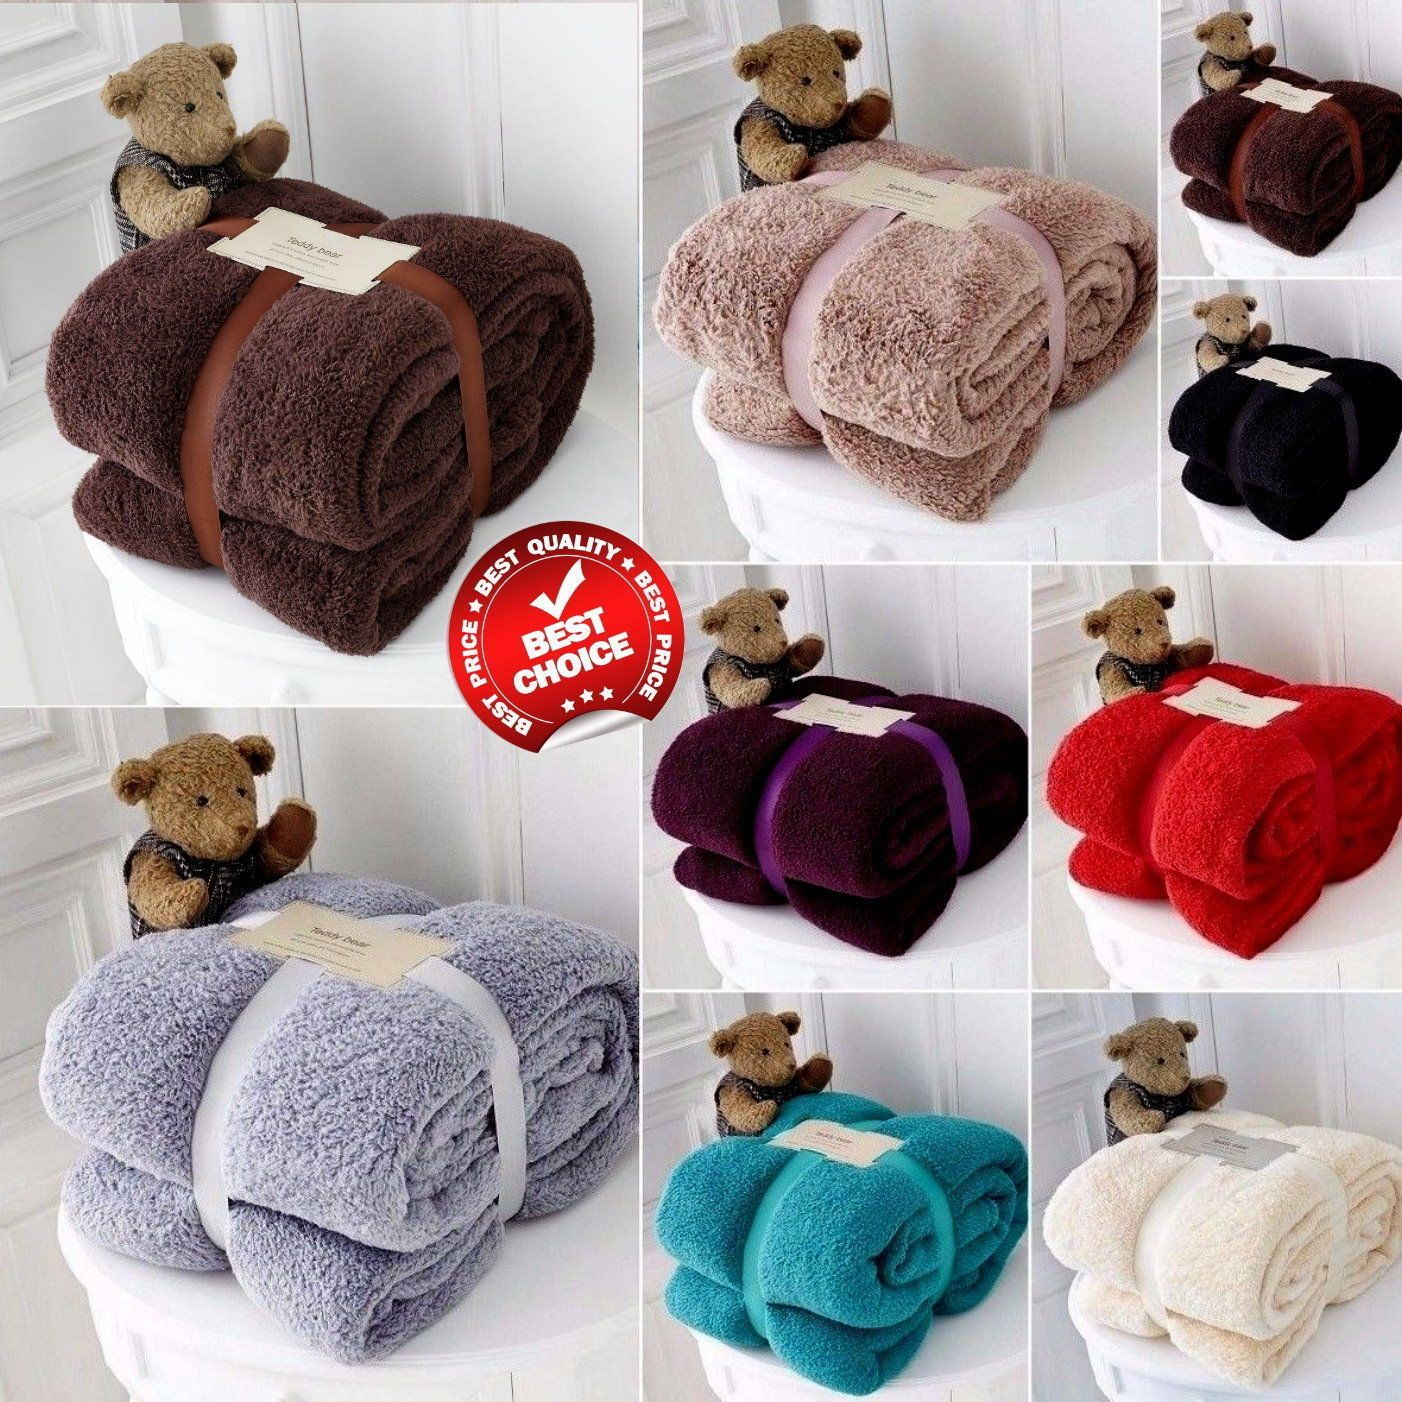 Extra Soft And Warm Superior Quality Fleece Blanket Throws Perfect